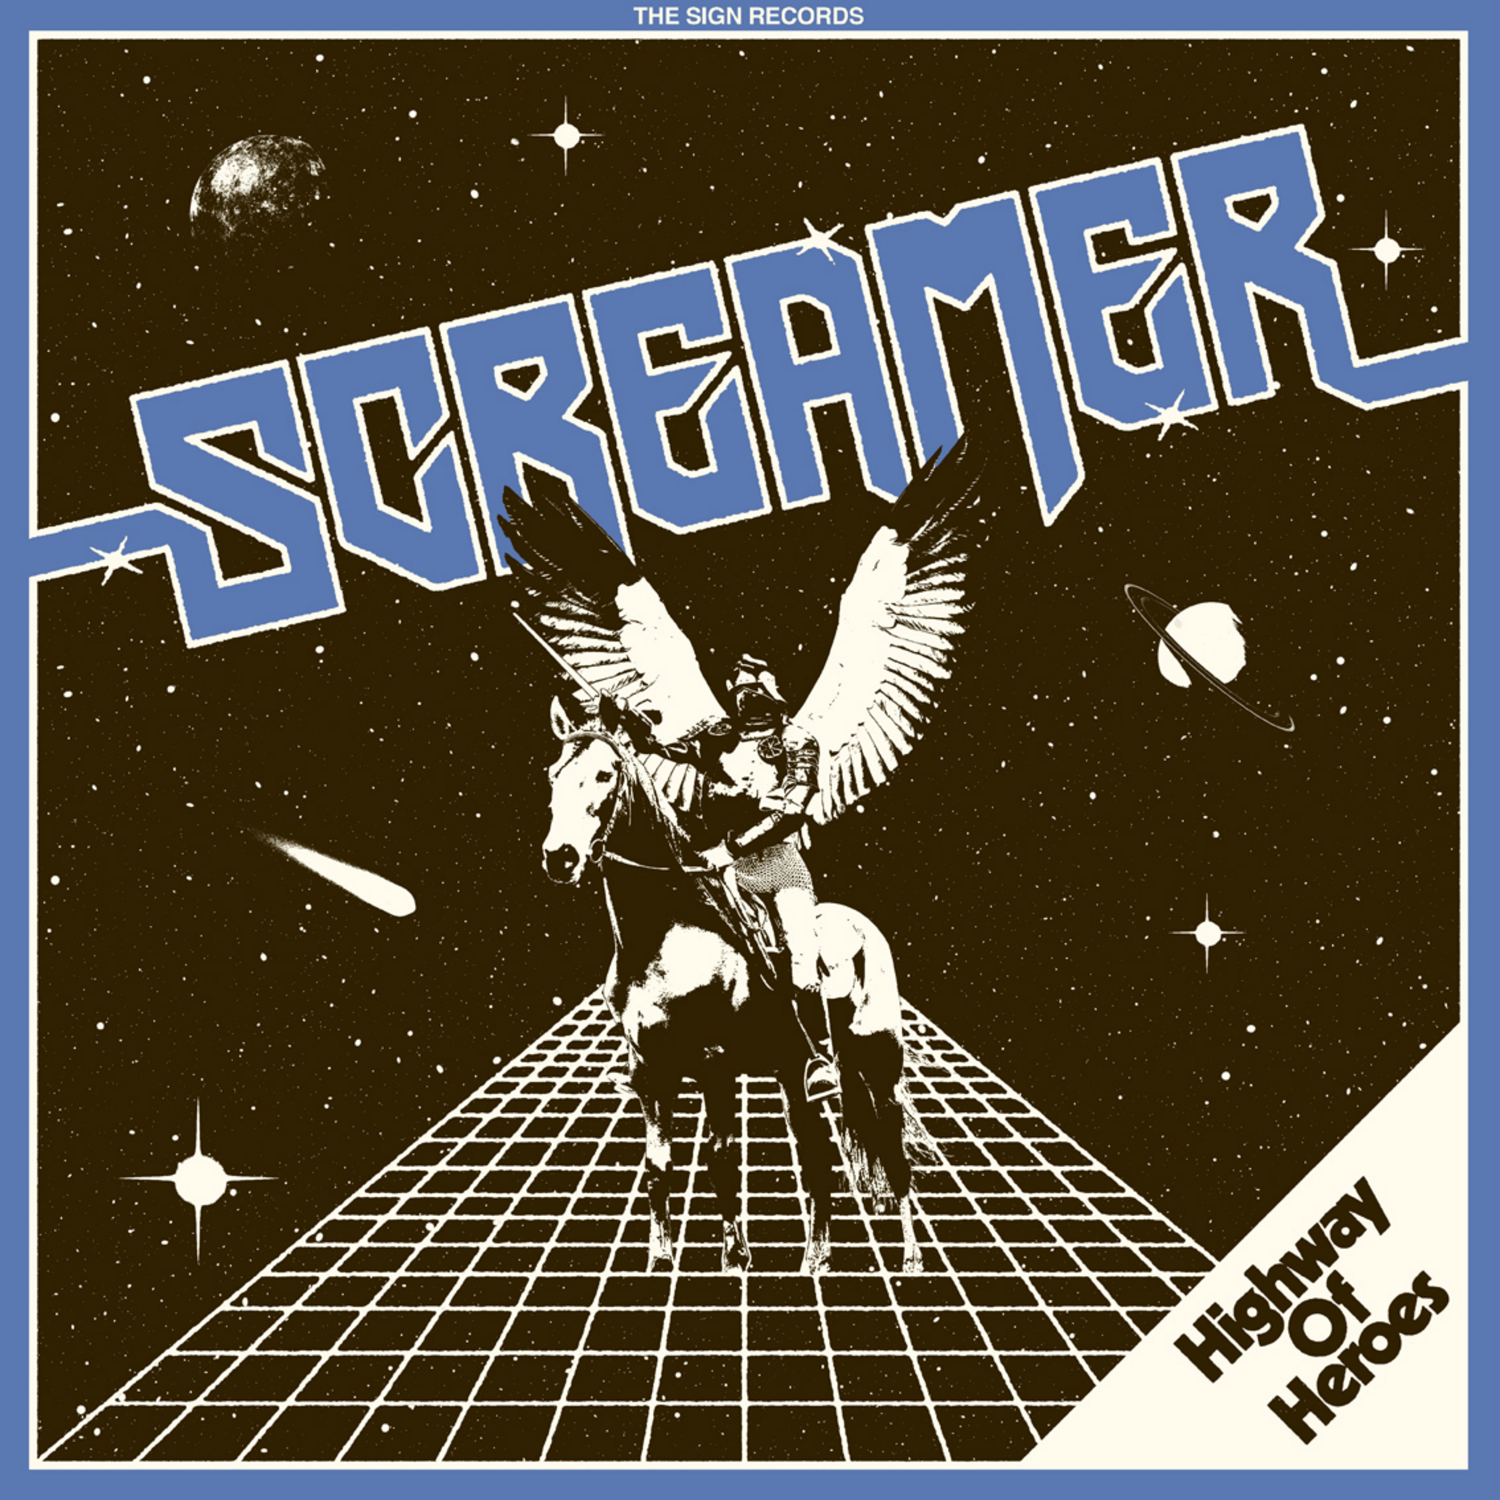 screamer-highway-of-heroes-auf-den-spuren-der-alten-helden-album-review